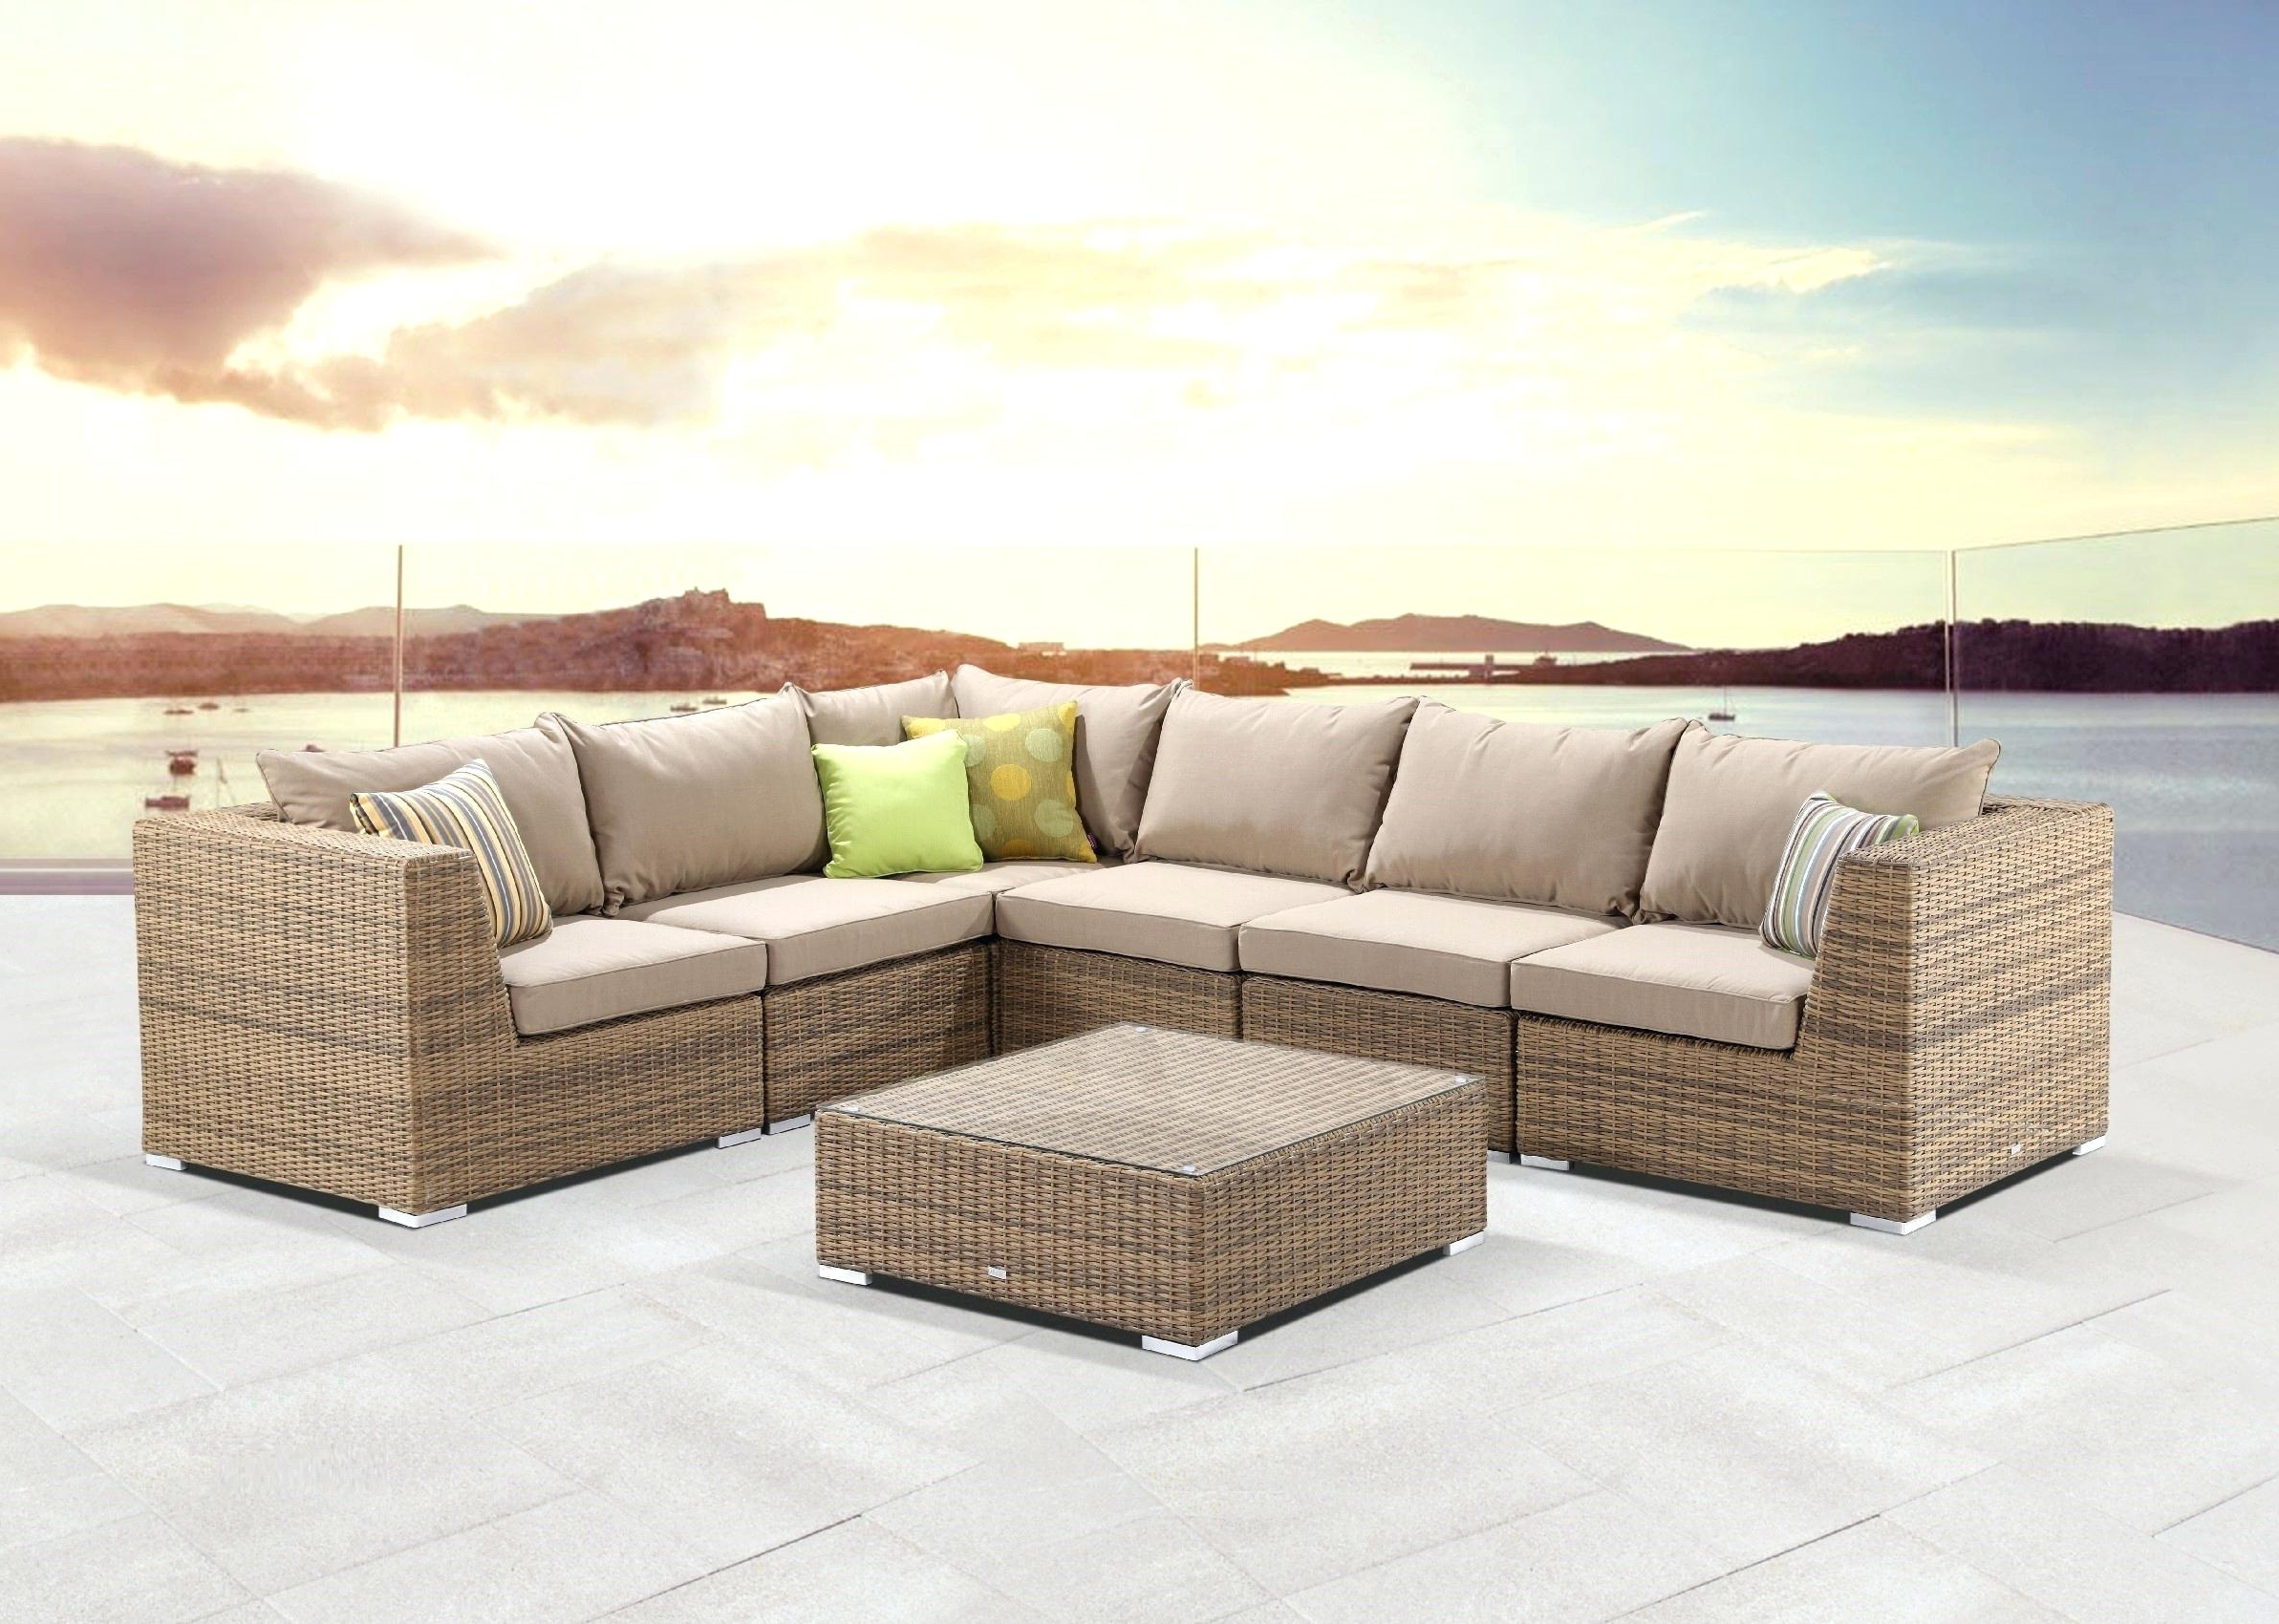 Trinidad And Tobago Sectional Sofas Within Popular Trinidad Furniture Stores – 4Parkar (View 11 of 15)